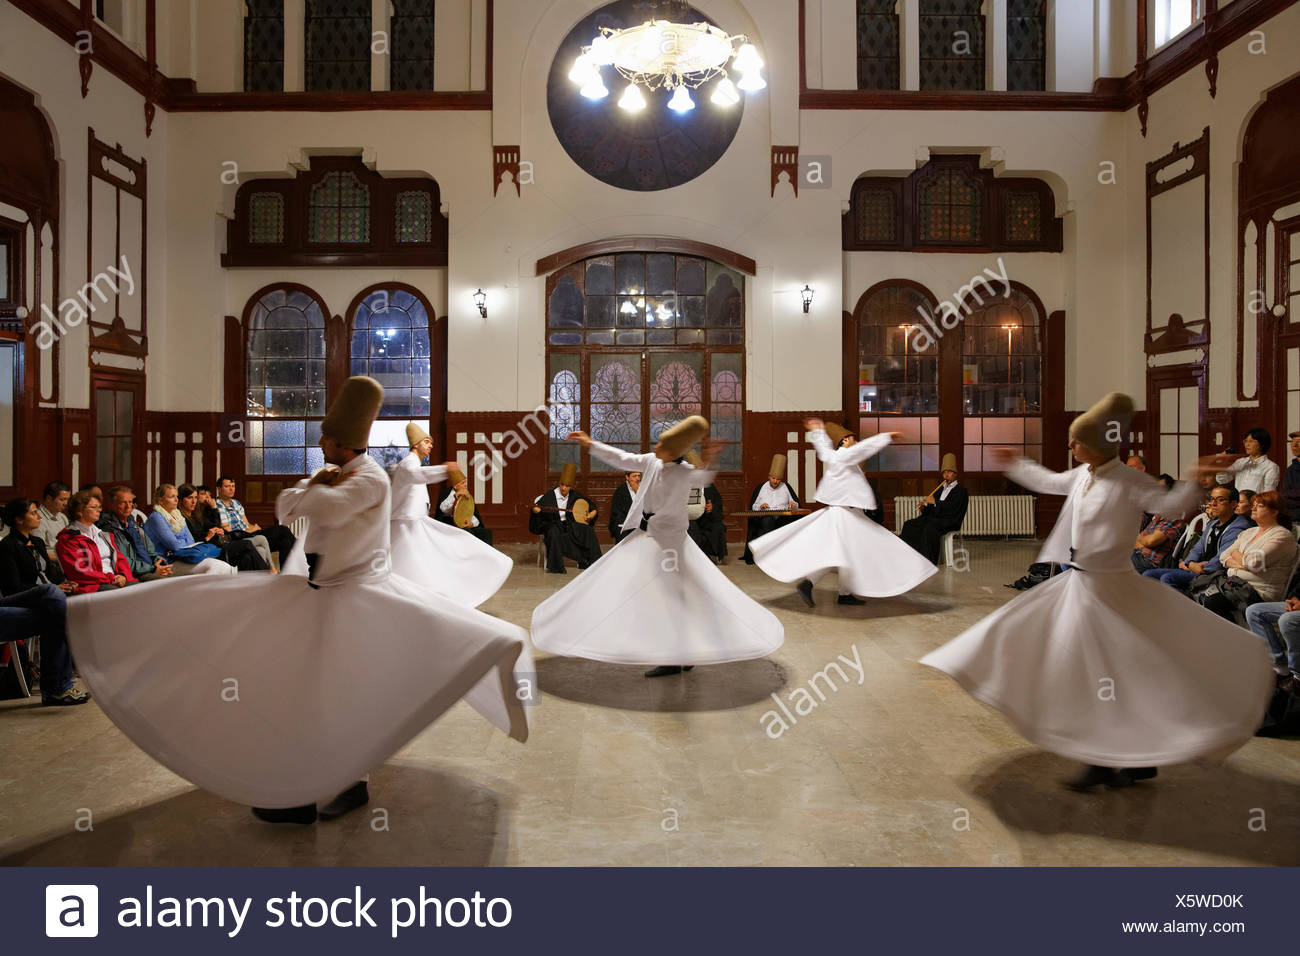 Whirling Dervishes dancing the Sema, a Dervish dance, Sirkeci Railway Station, Istanbul, Turkey, Europe, Istanbul - Stock Image